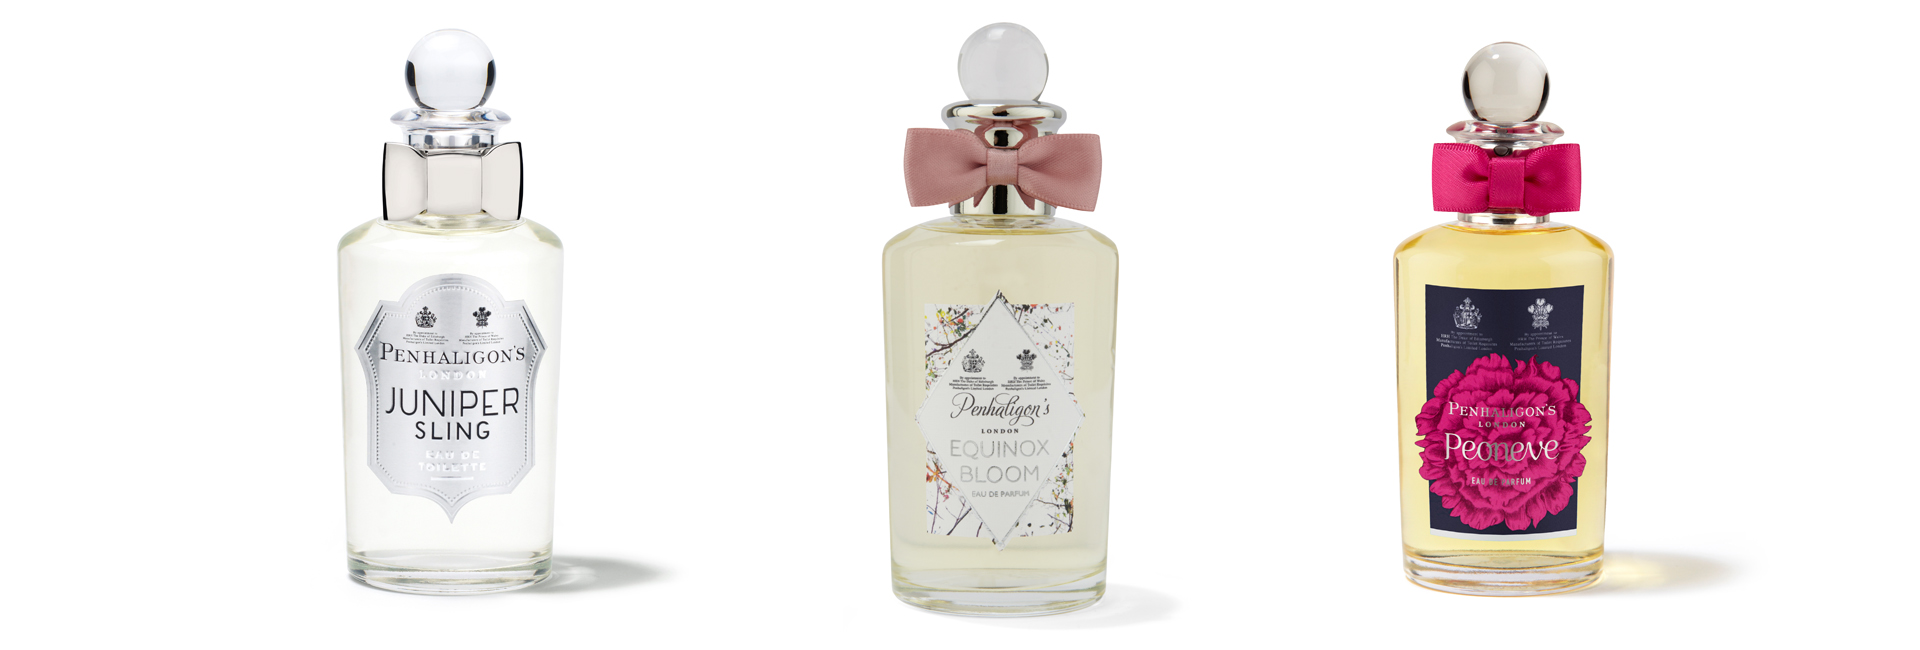 penhaligon-juniper-sling-equinox-bloom-poeneve-blog-beaute-soin-parfum-homme